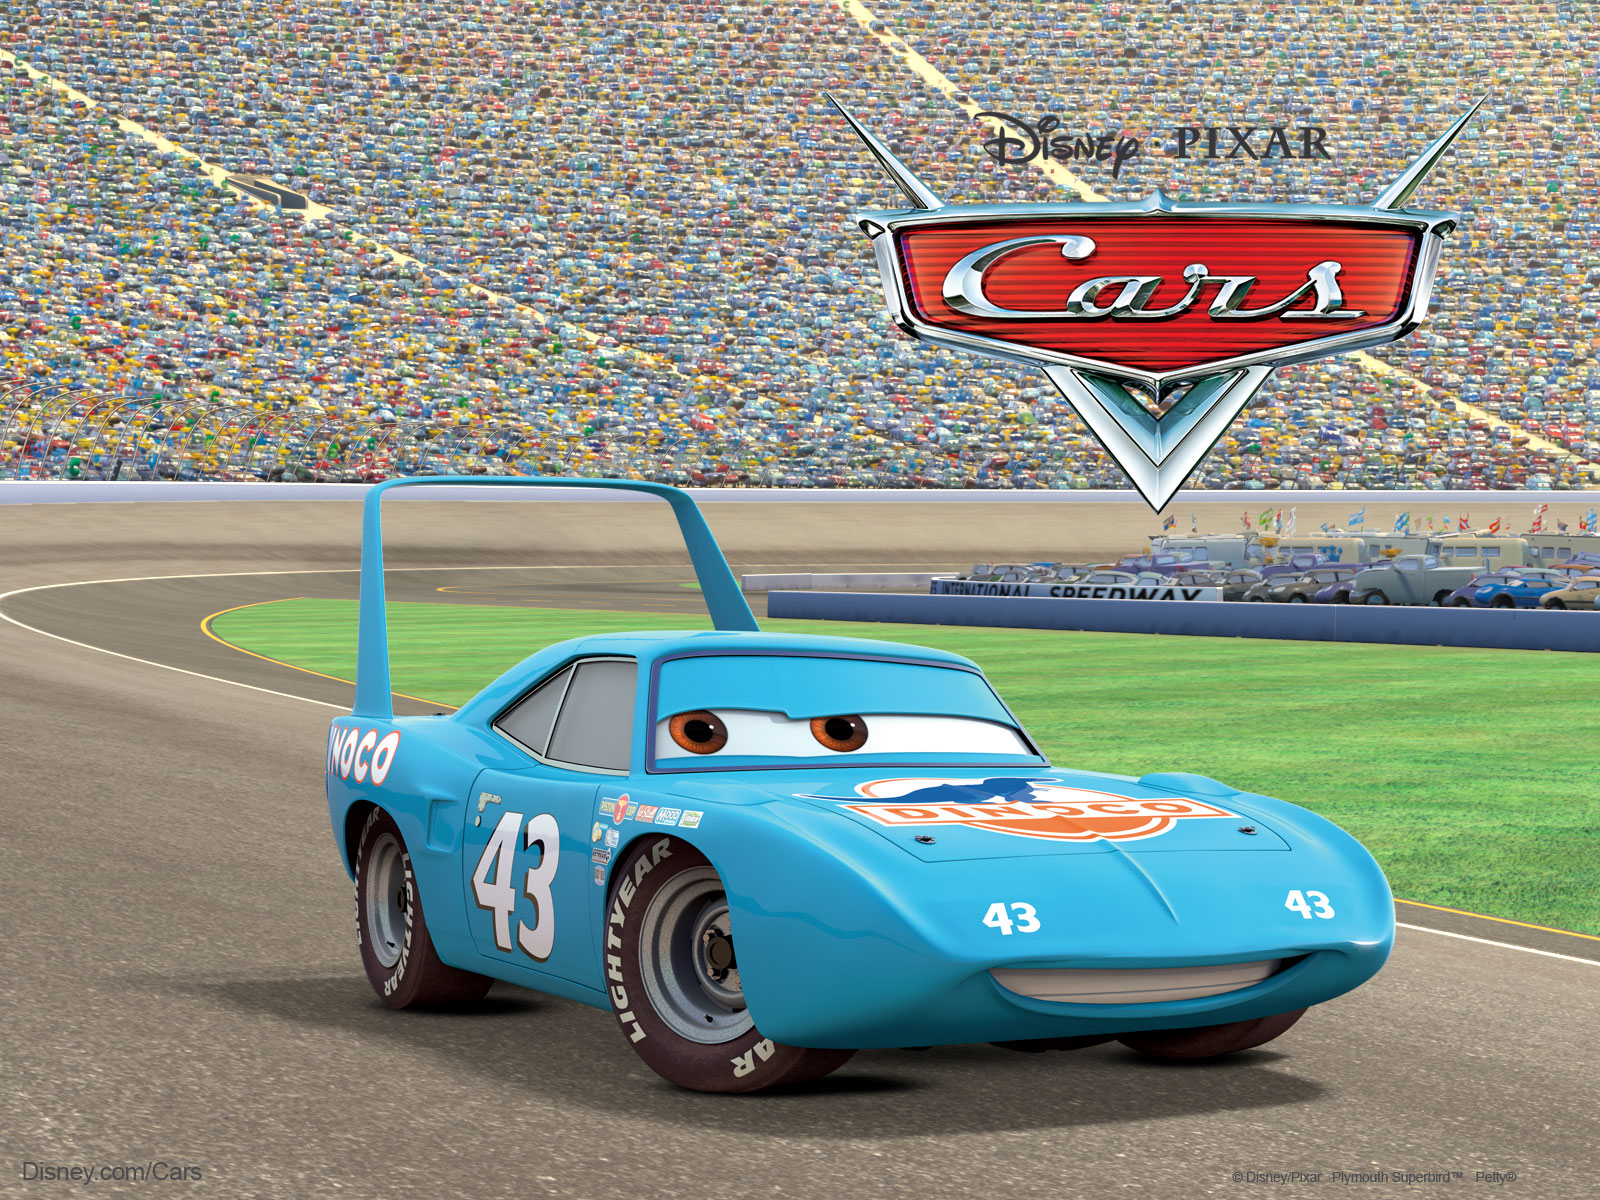 Nanopics Pictures King The Race Car From Pixar S Cars